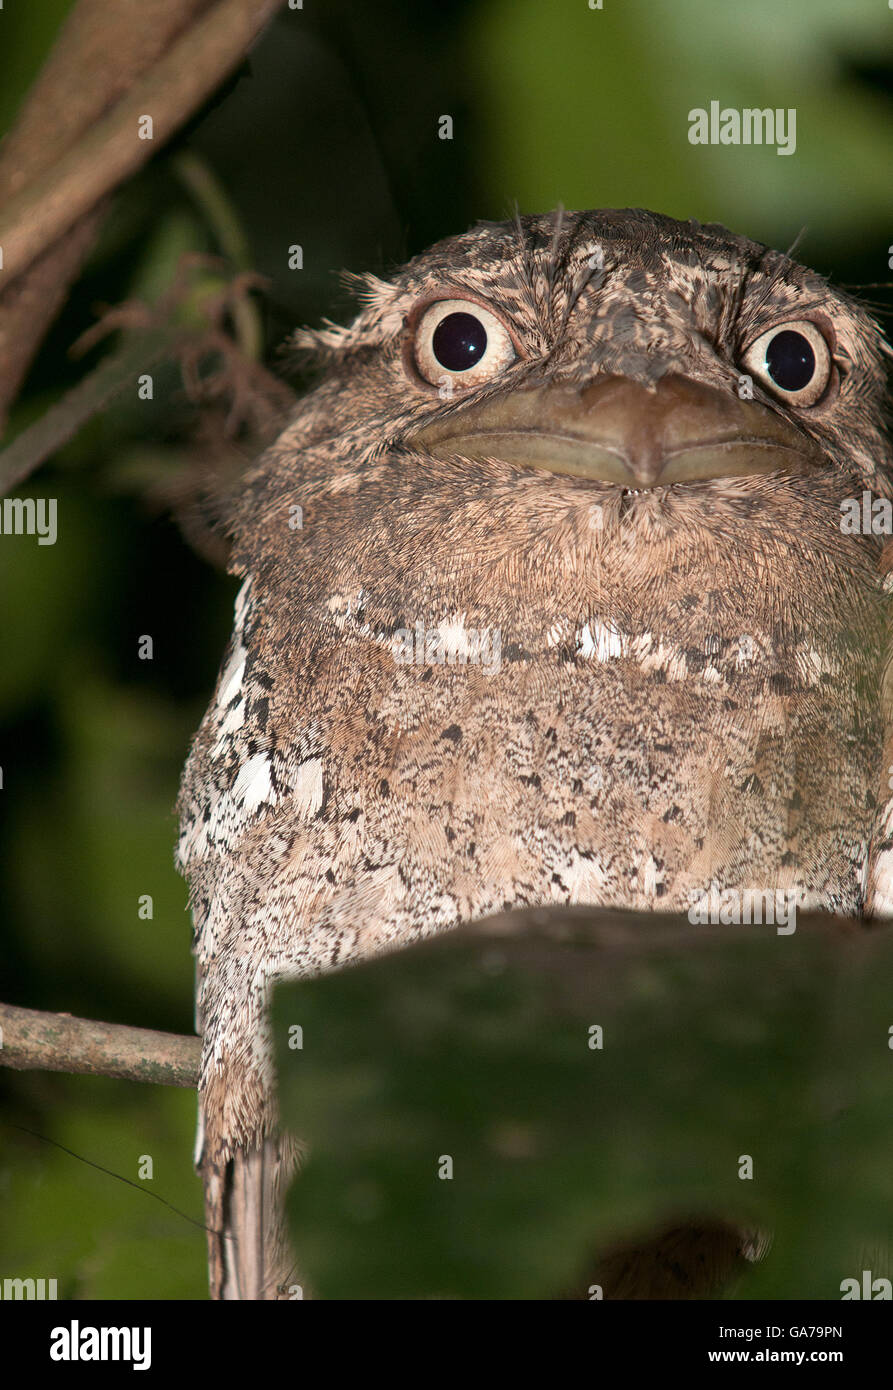 The image of Srilanka Frogmouth (Batrachostomus moniliger) In Kerala, India - Stock Image